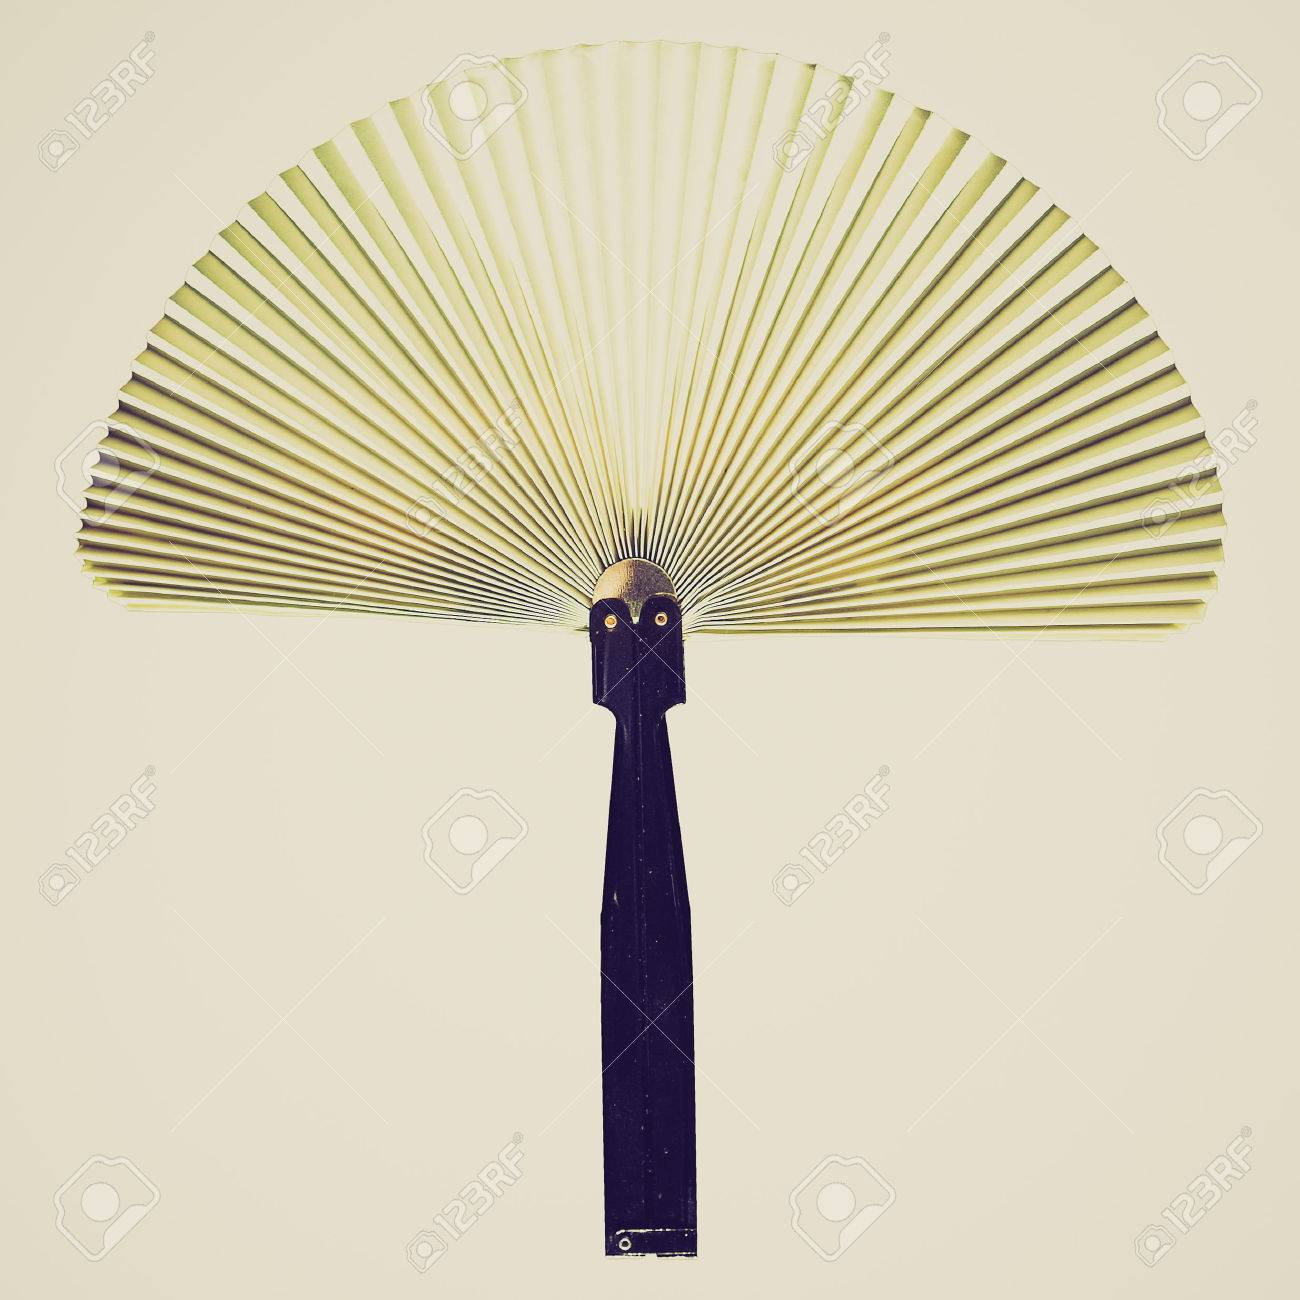 Vintage Looking Fan Vintage Looking Hand Held Fan Used To Induce An Airflow For Cooling